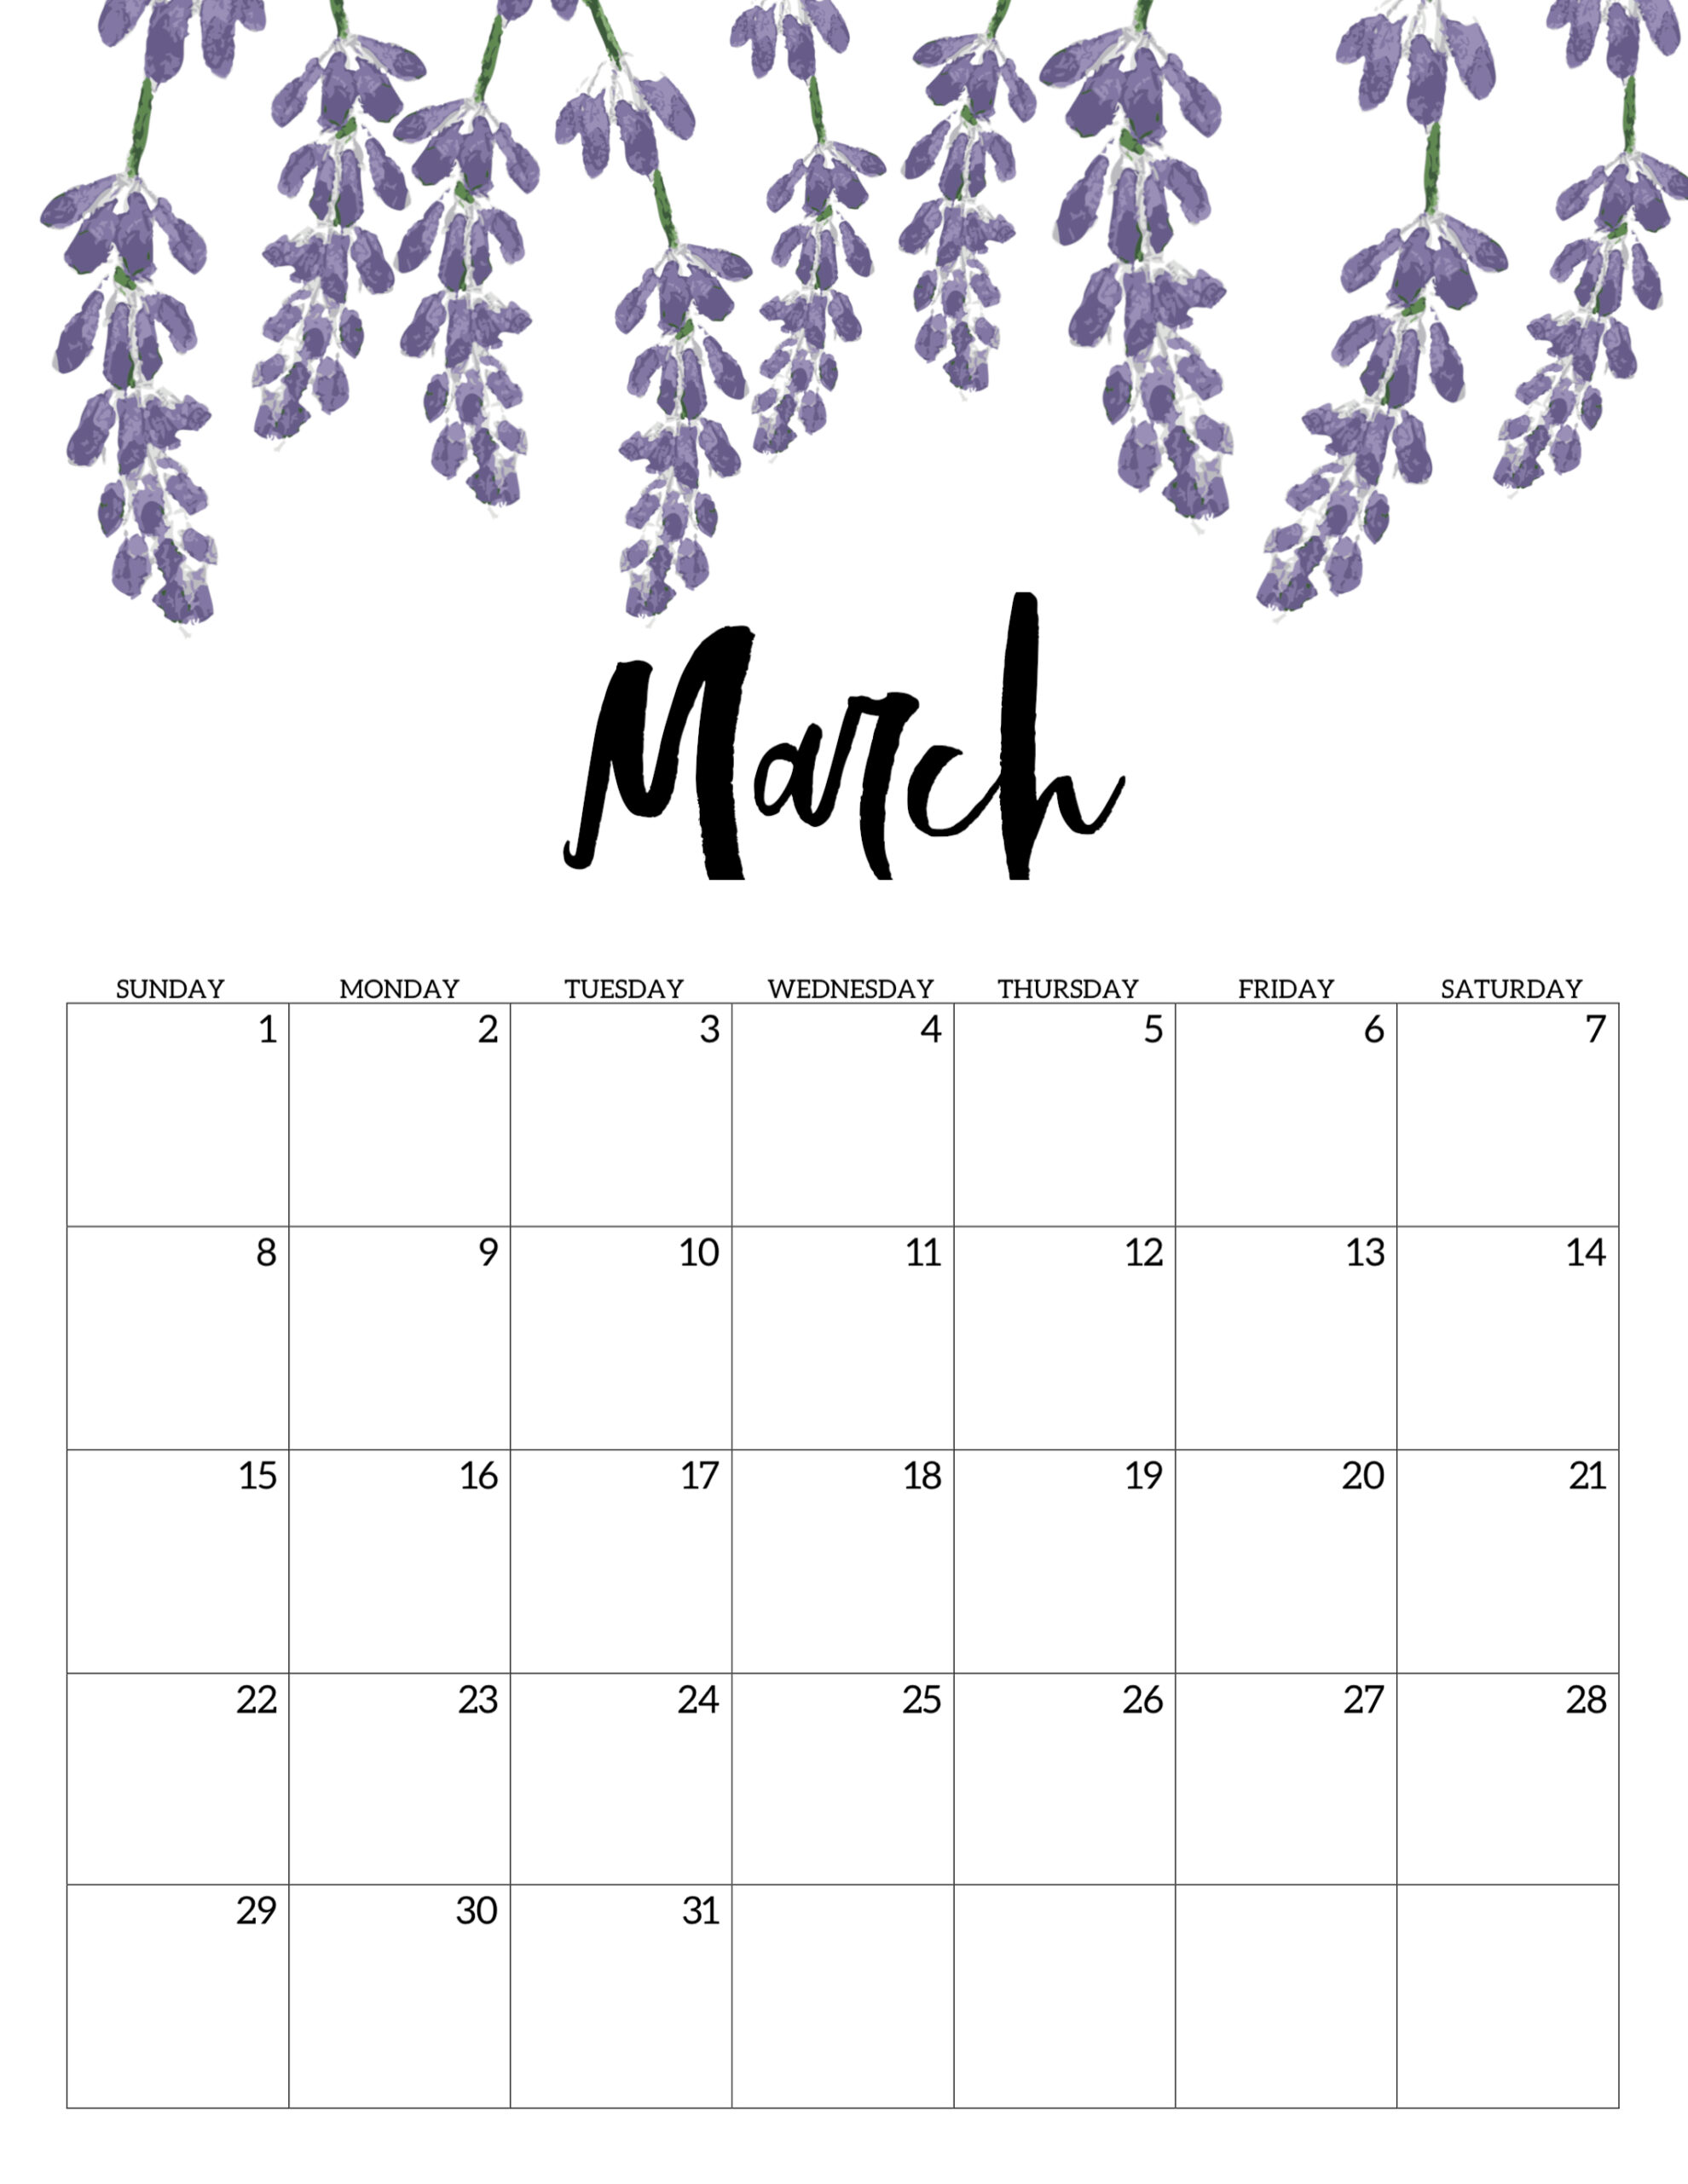 Calendar 2020 February And March.Free Printable Calendar 2020 Floral Paper Trail Design